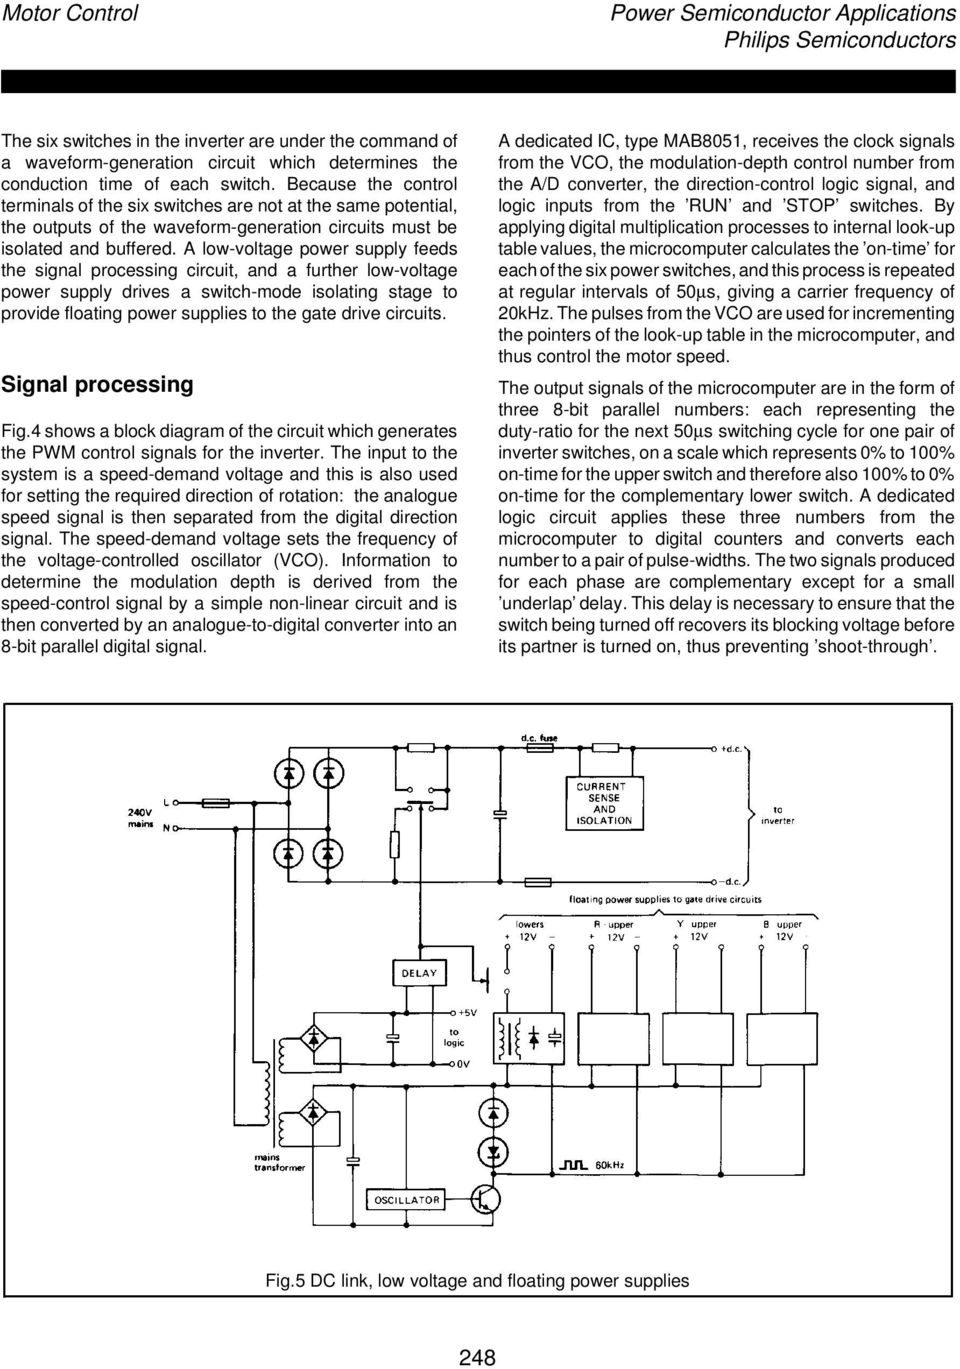 Power Semiconductor Applications Philips Semiconductors Chapter 3 Circuit Schematic Diagram Low Voltage Supply A Feeds The Signal Processing And Further